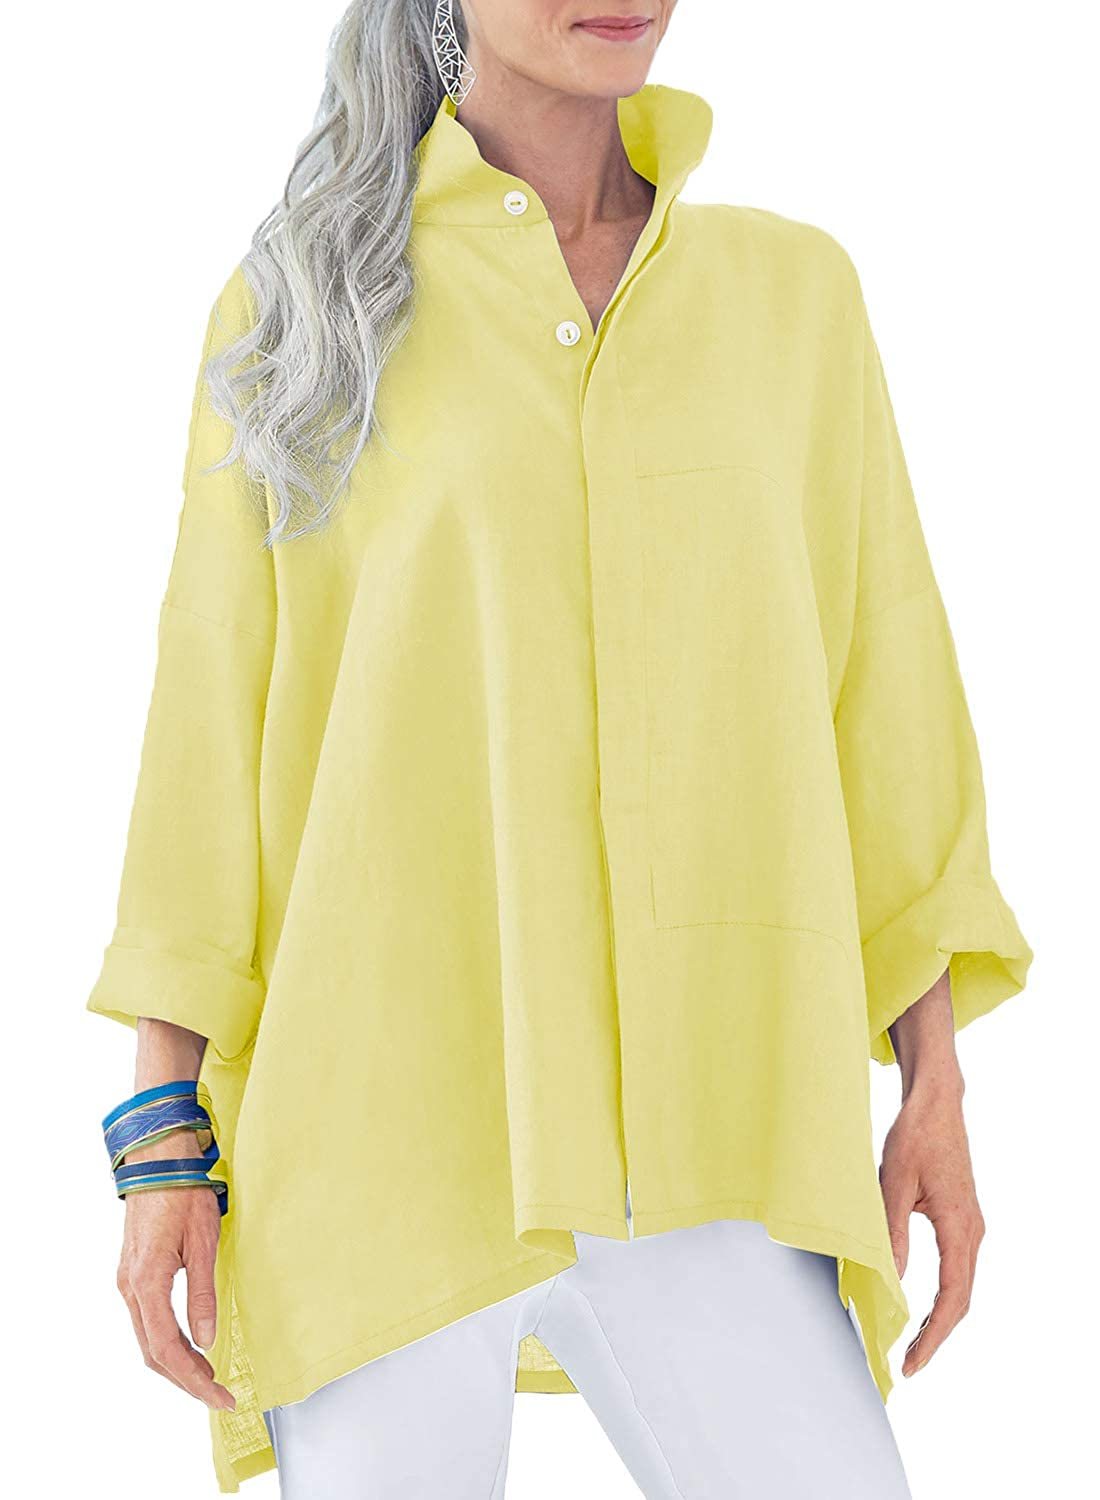 3adb8ecffab Front button down, high low hem design. Can wear short sleeve top or tank  top under it. Perfect to pair with jeans, leggings in ...